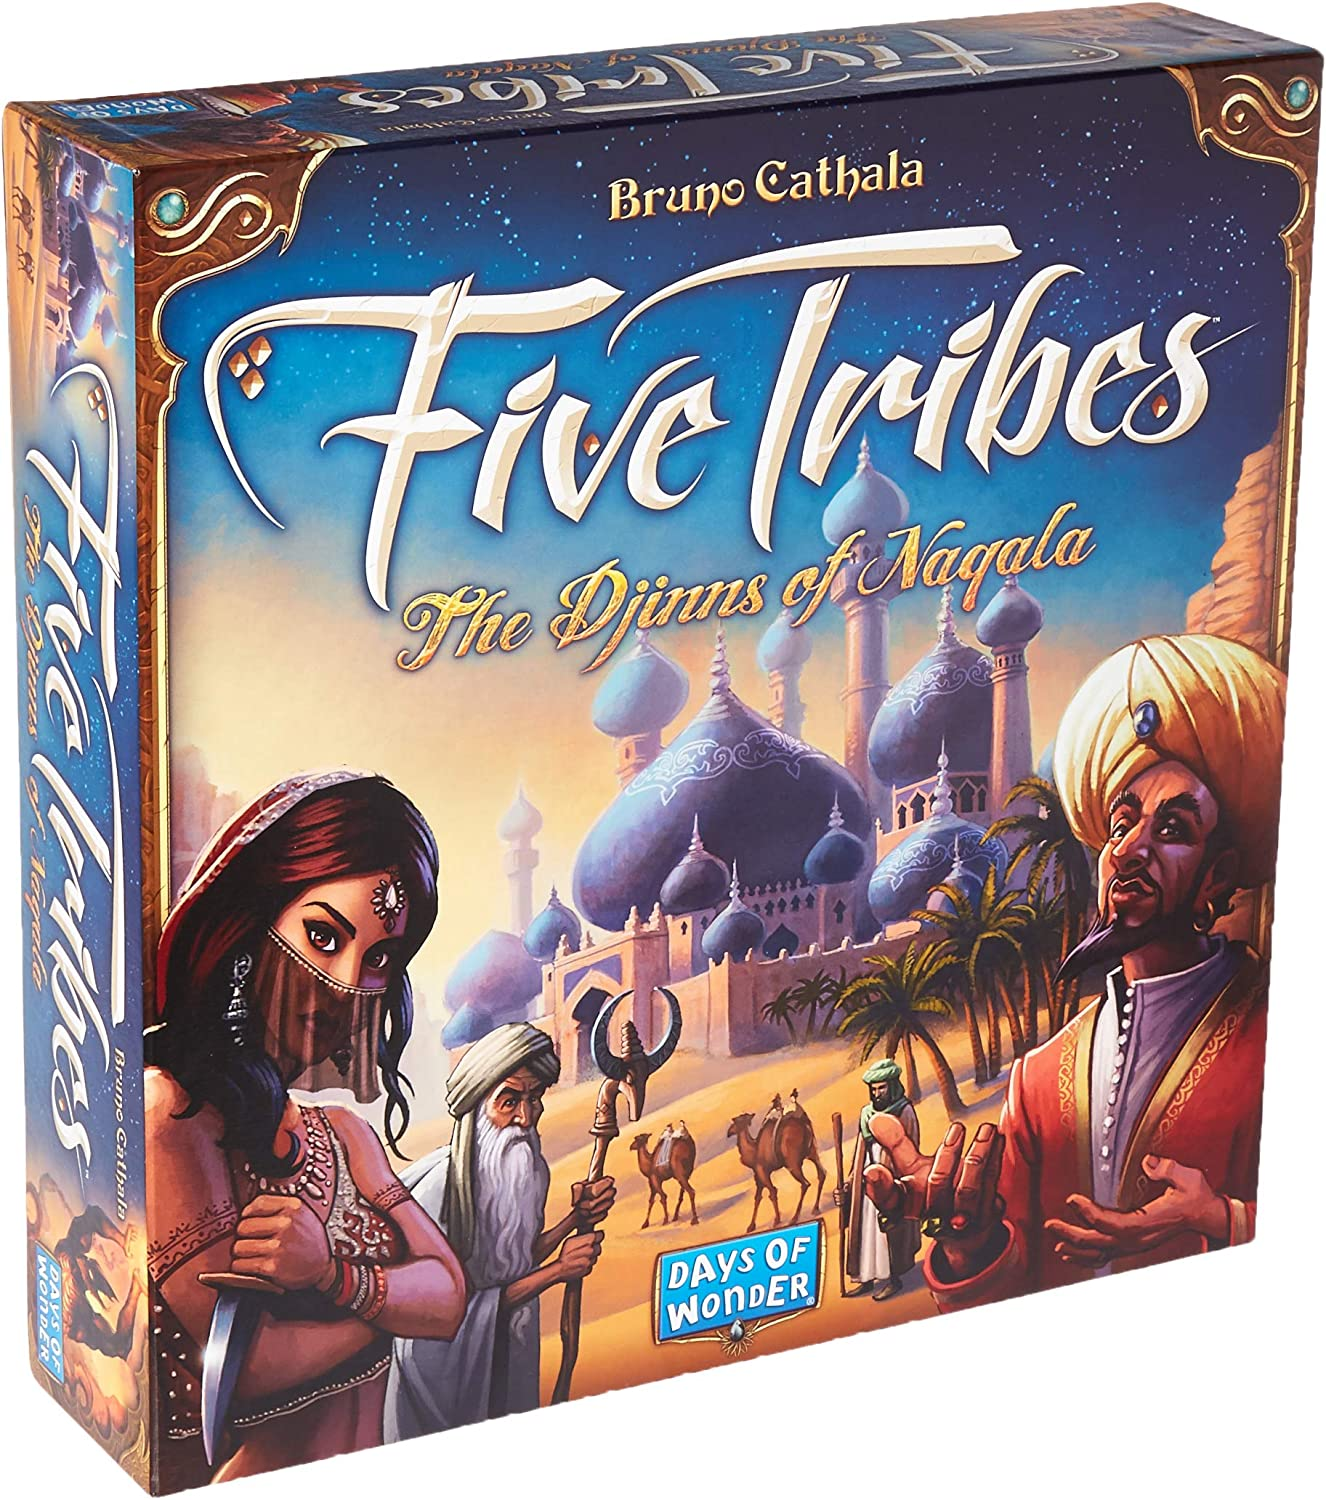 Five Tribes The Djinns of Naqala Jeu de société (français Non Garanti)